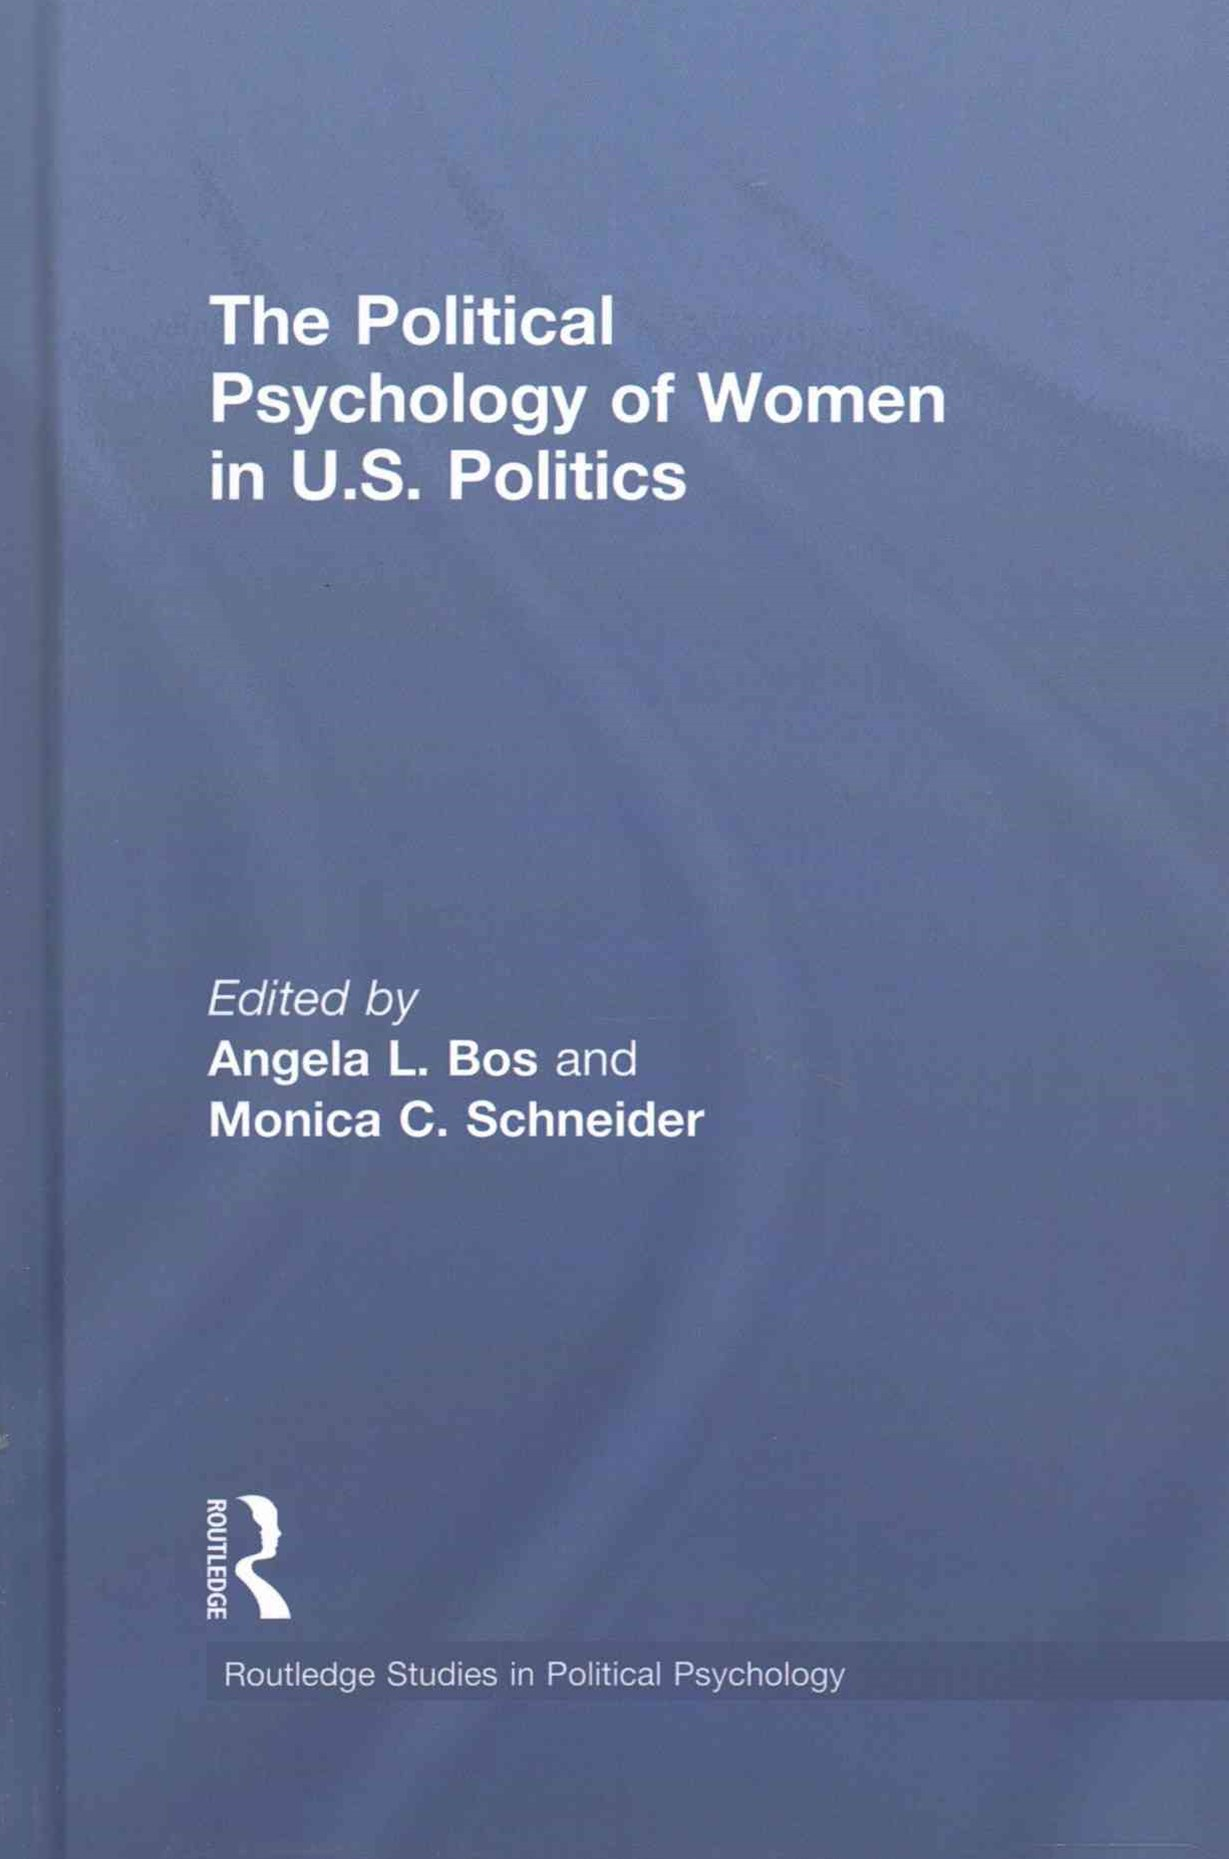 The Political Psychology of Women in U. S. Politics